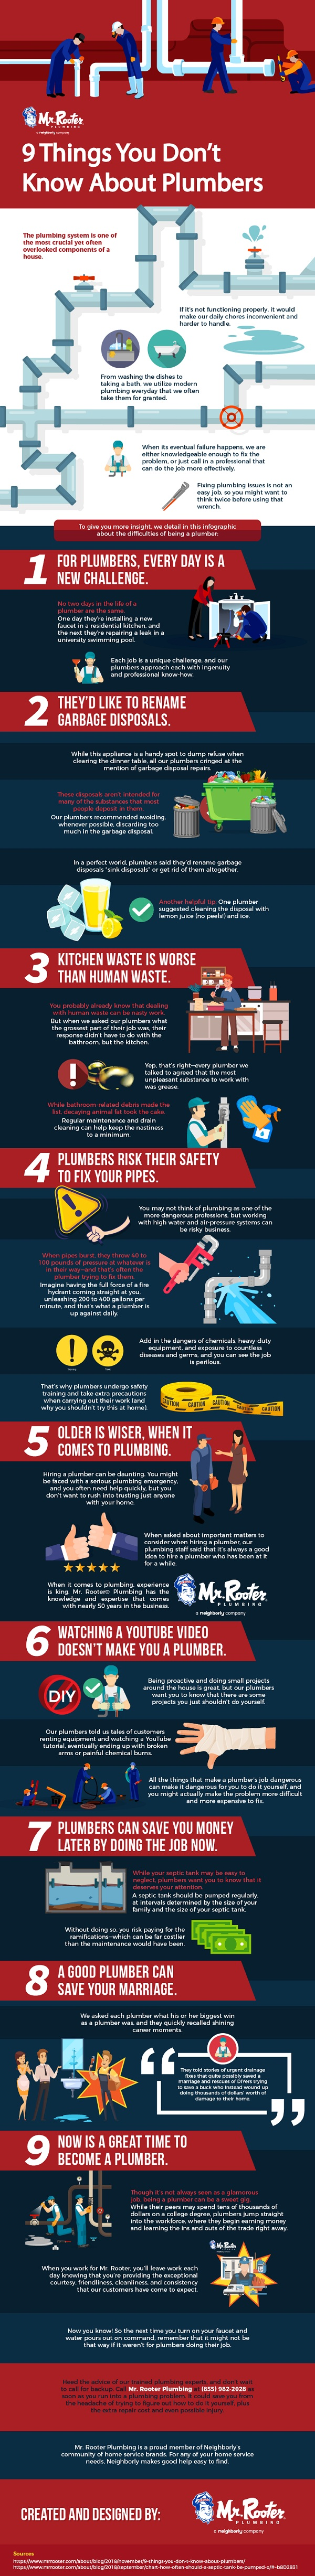 You Don't Know About Plumbers